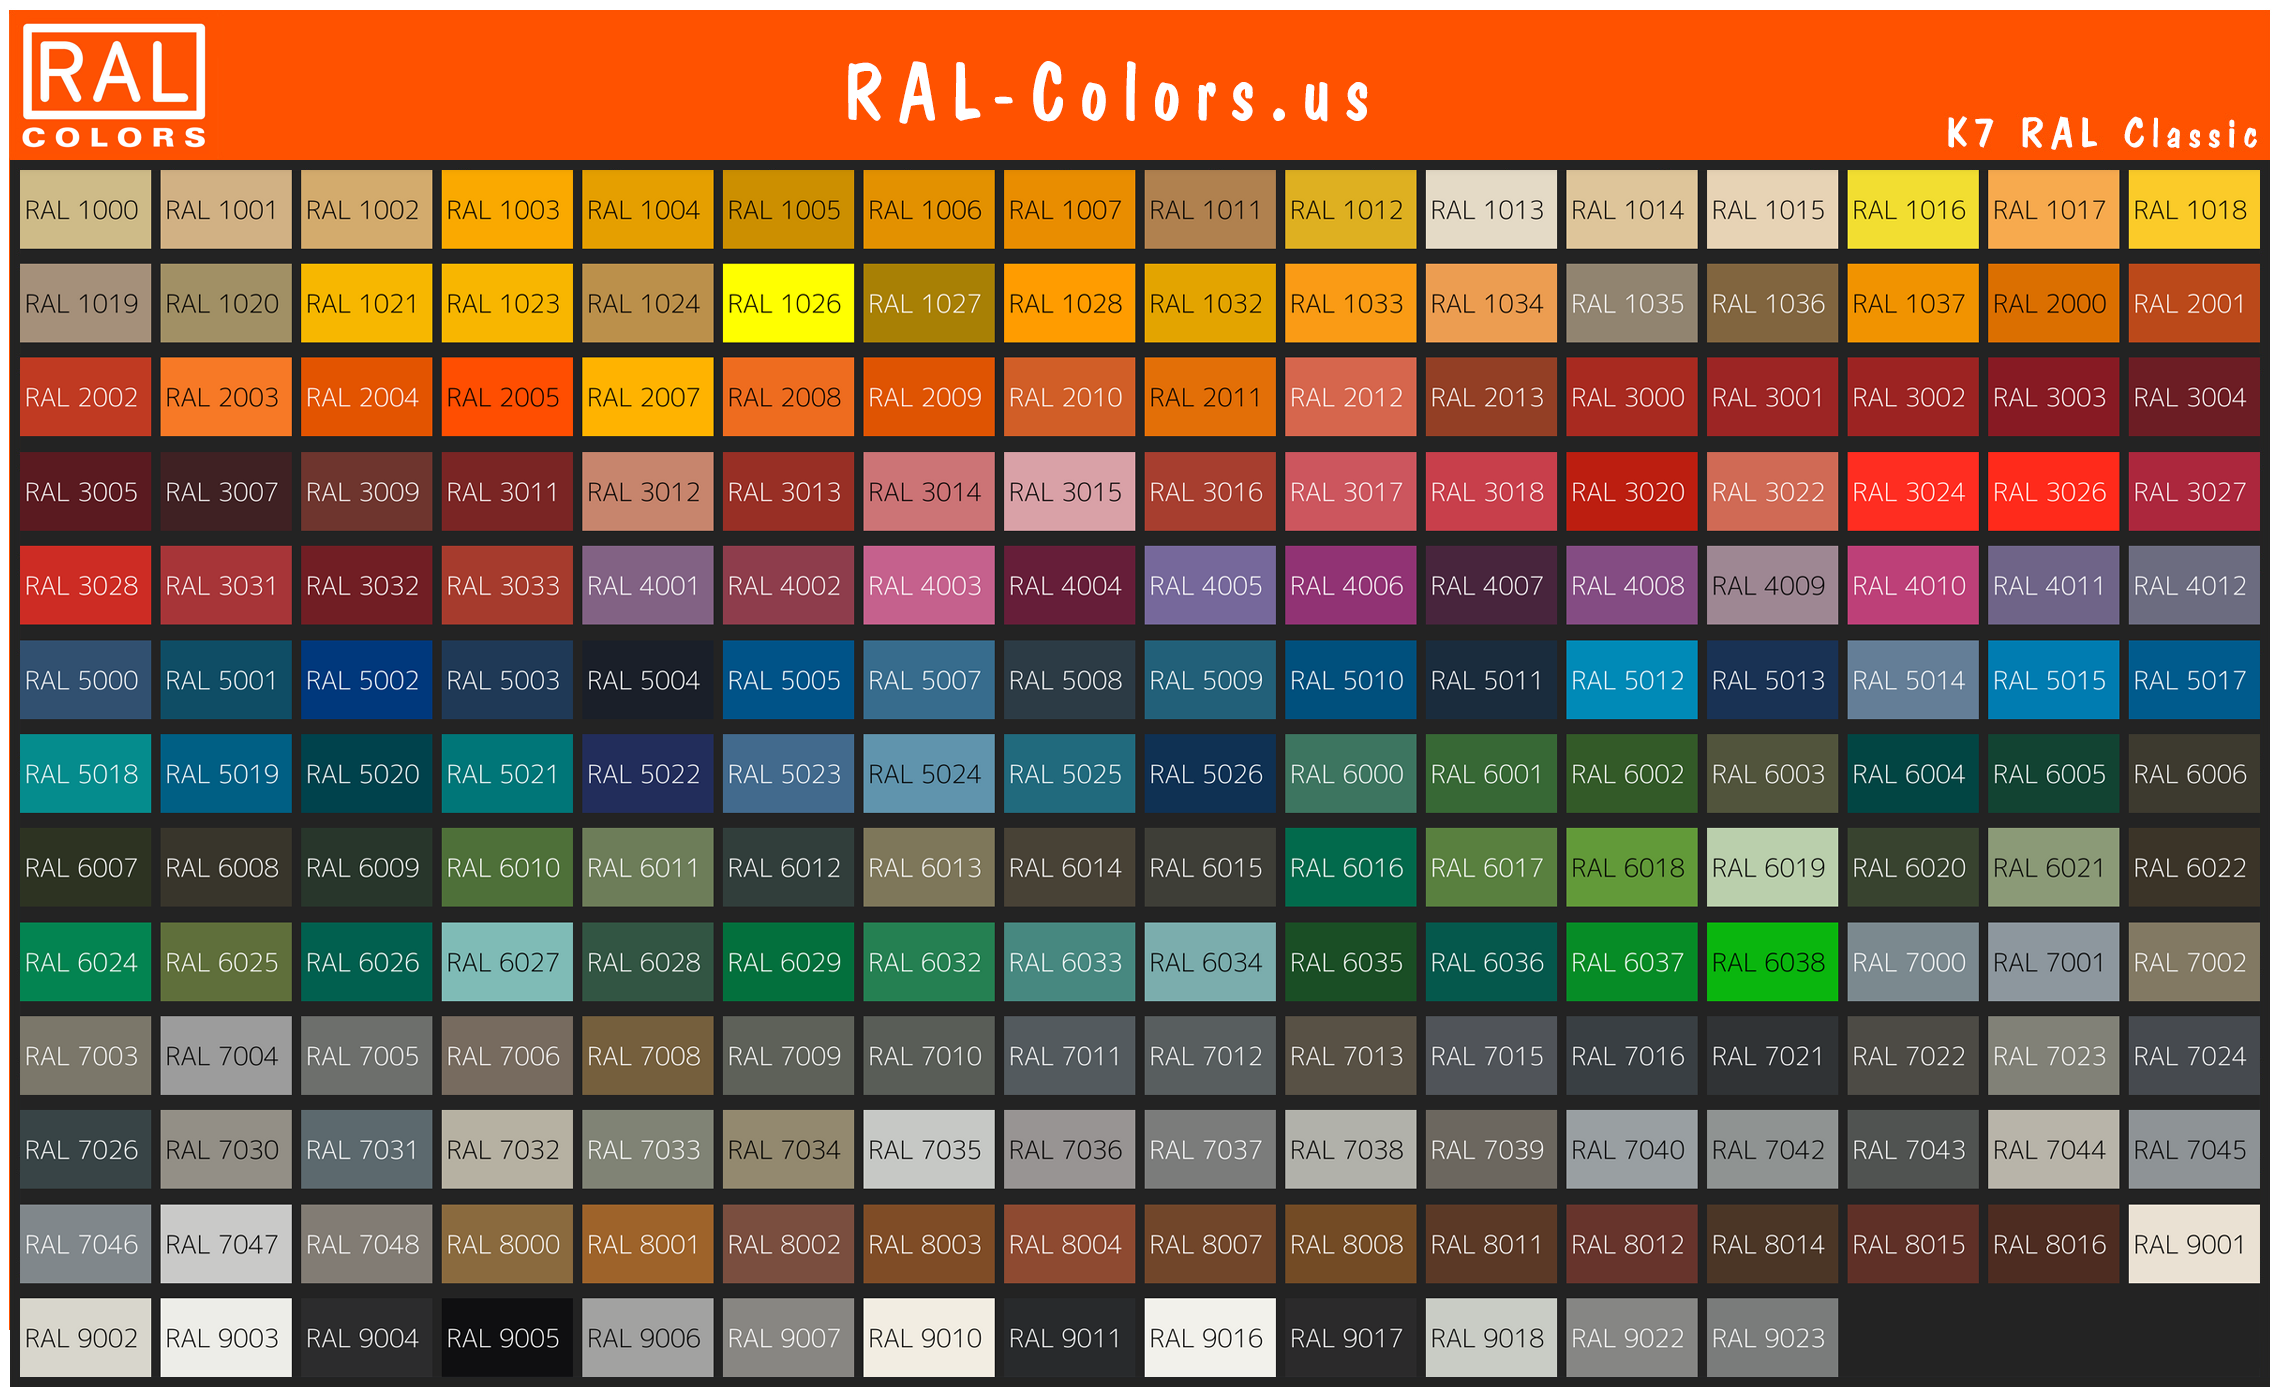 RAL Classic Color chart with names and RAL to RGB / CMYK conversion info